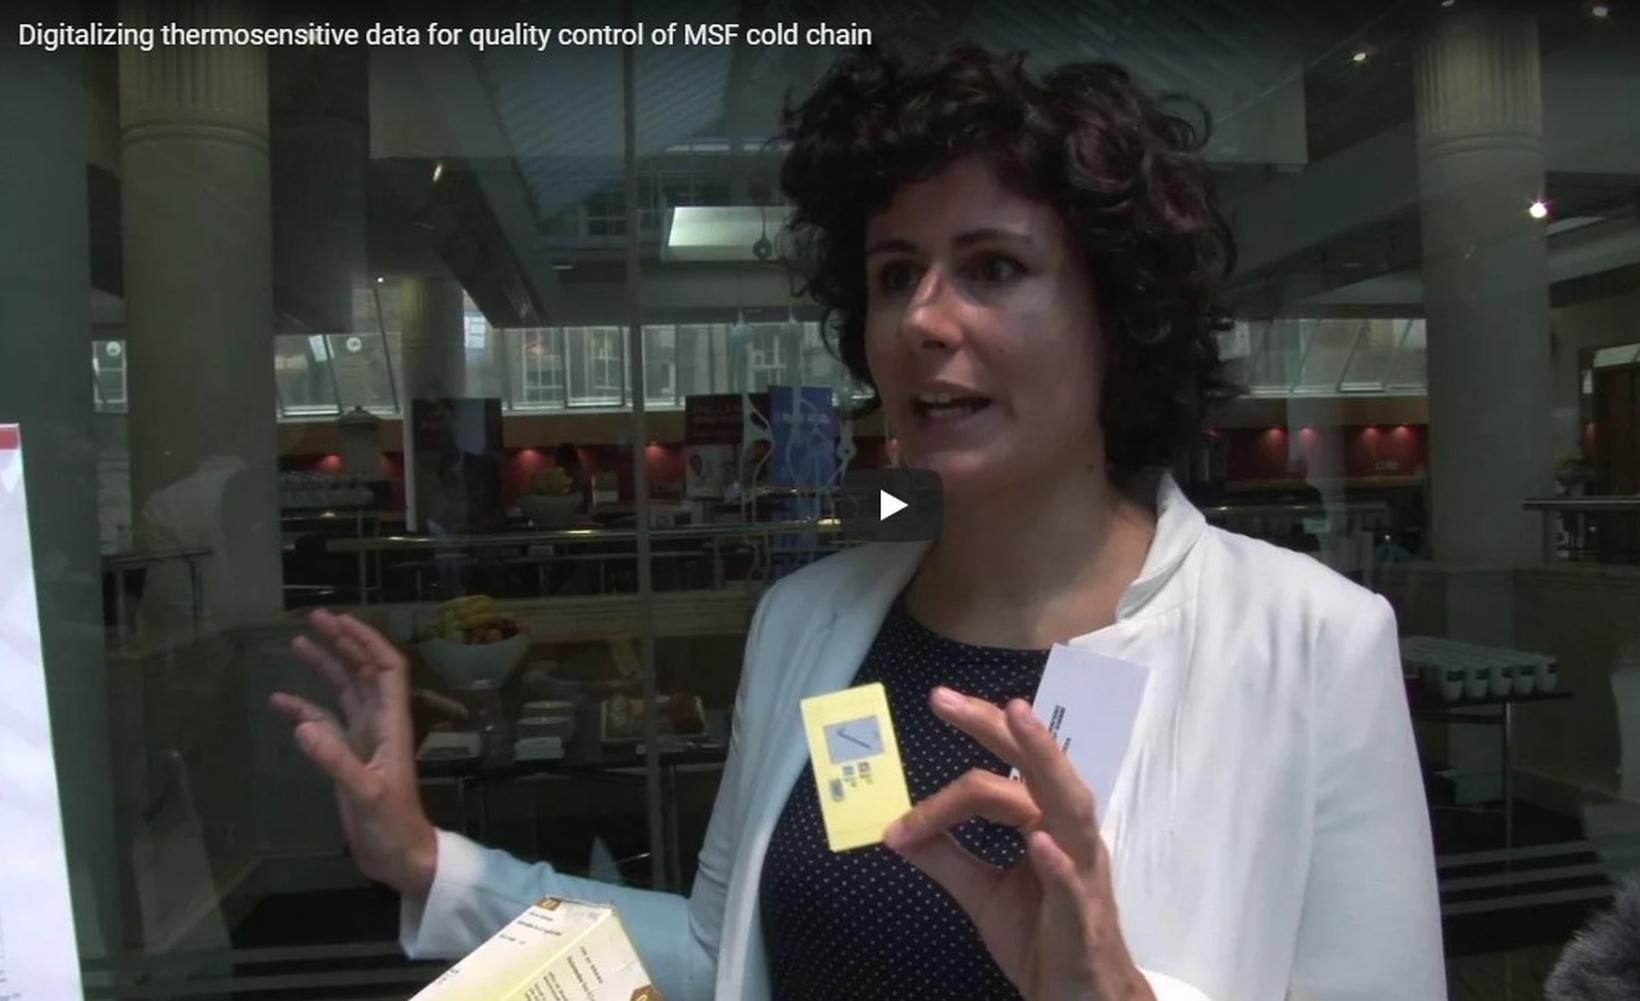 MSF Sweden Innovation Unit's Ana Laura Santos interviewed on the Smart Temperature Label